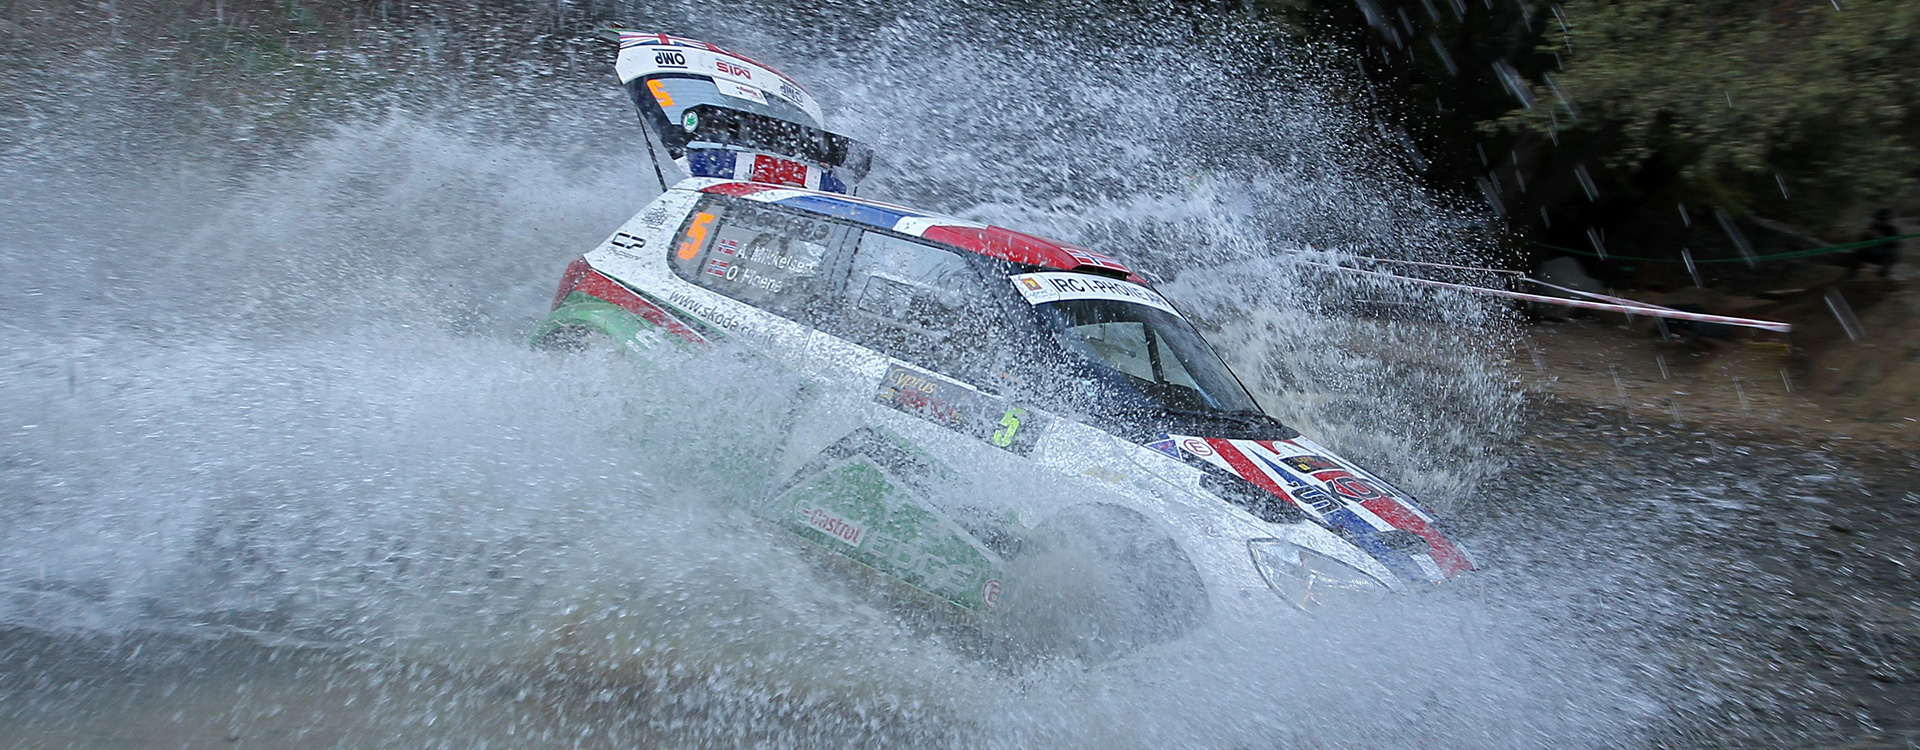 From the Archives: Andreas Mikkelsen and ŠKODA